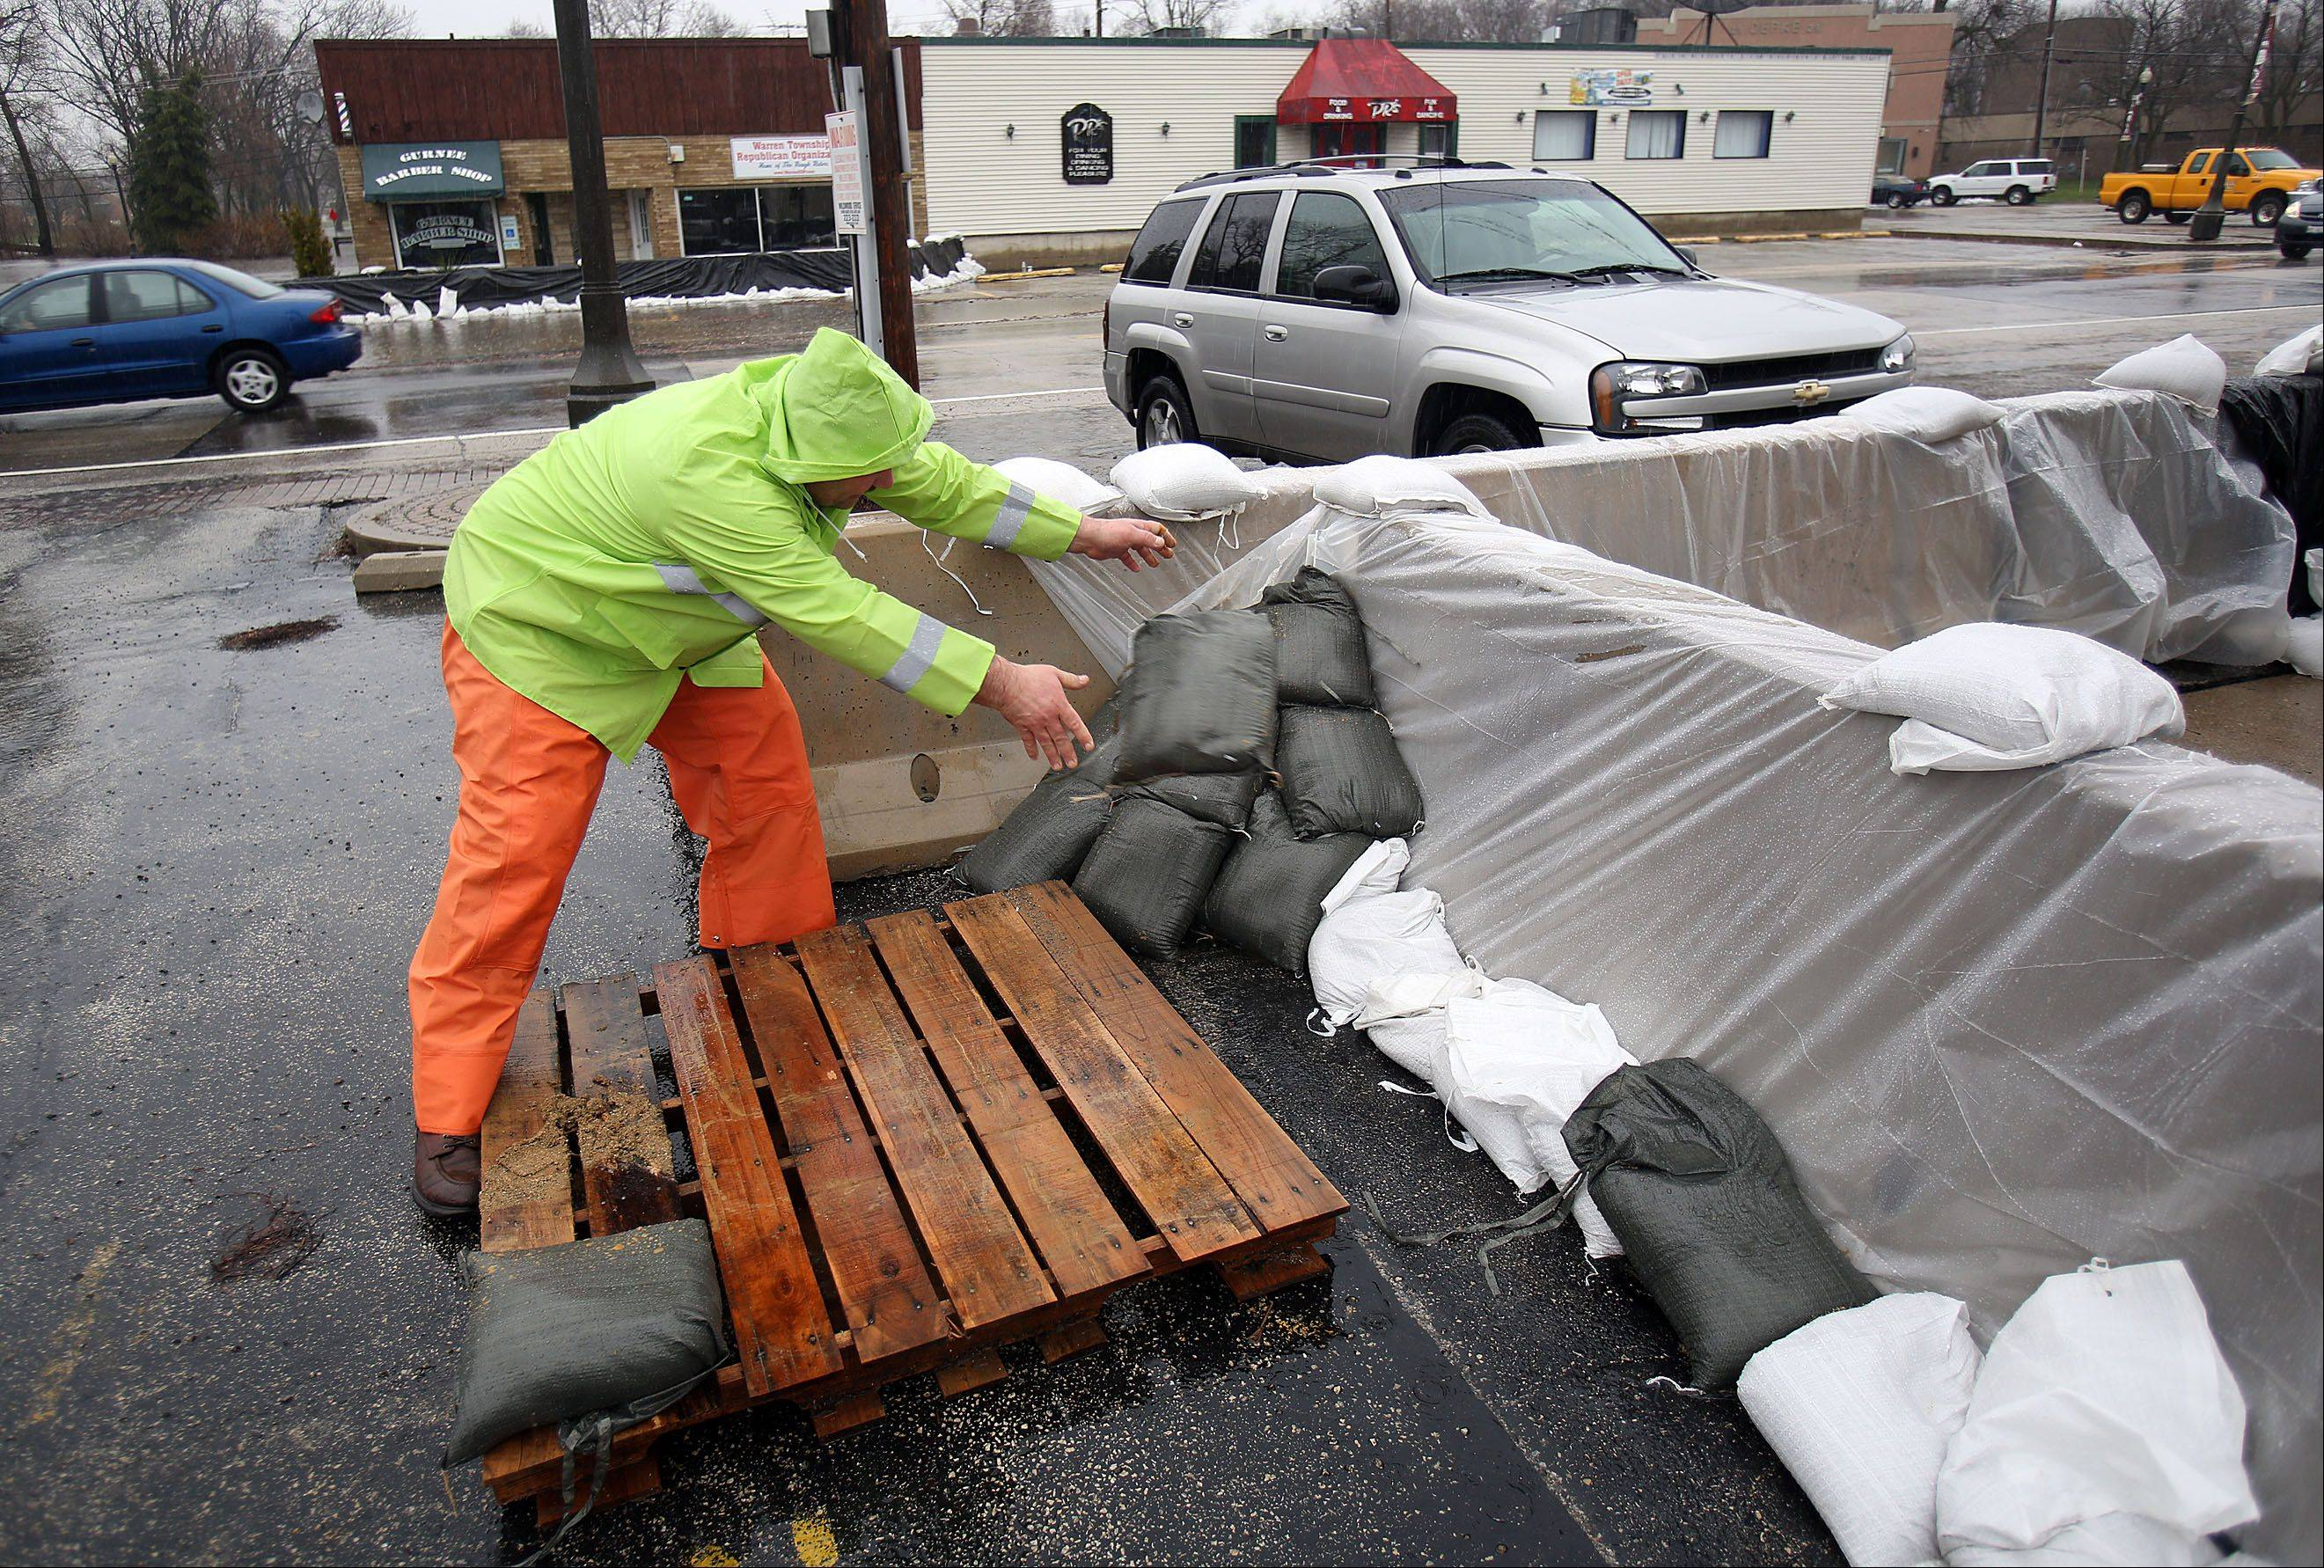 Steve Lundy/slundy@dailyherald.com Volunteer Fred Rickert of Zion places sandbags at Tranquility Salon on Old Grand Avenue in Gurnee Thursday morning.